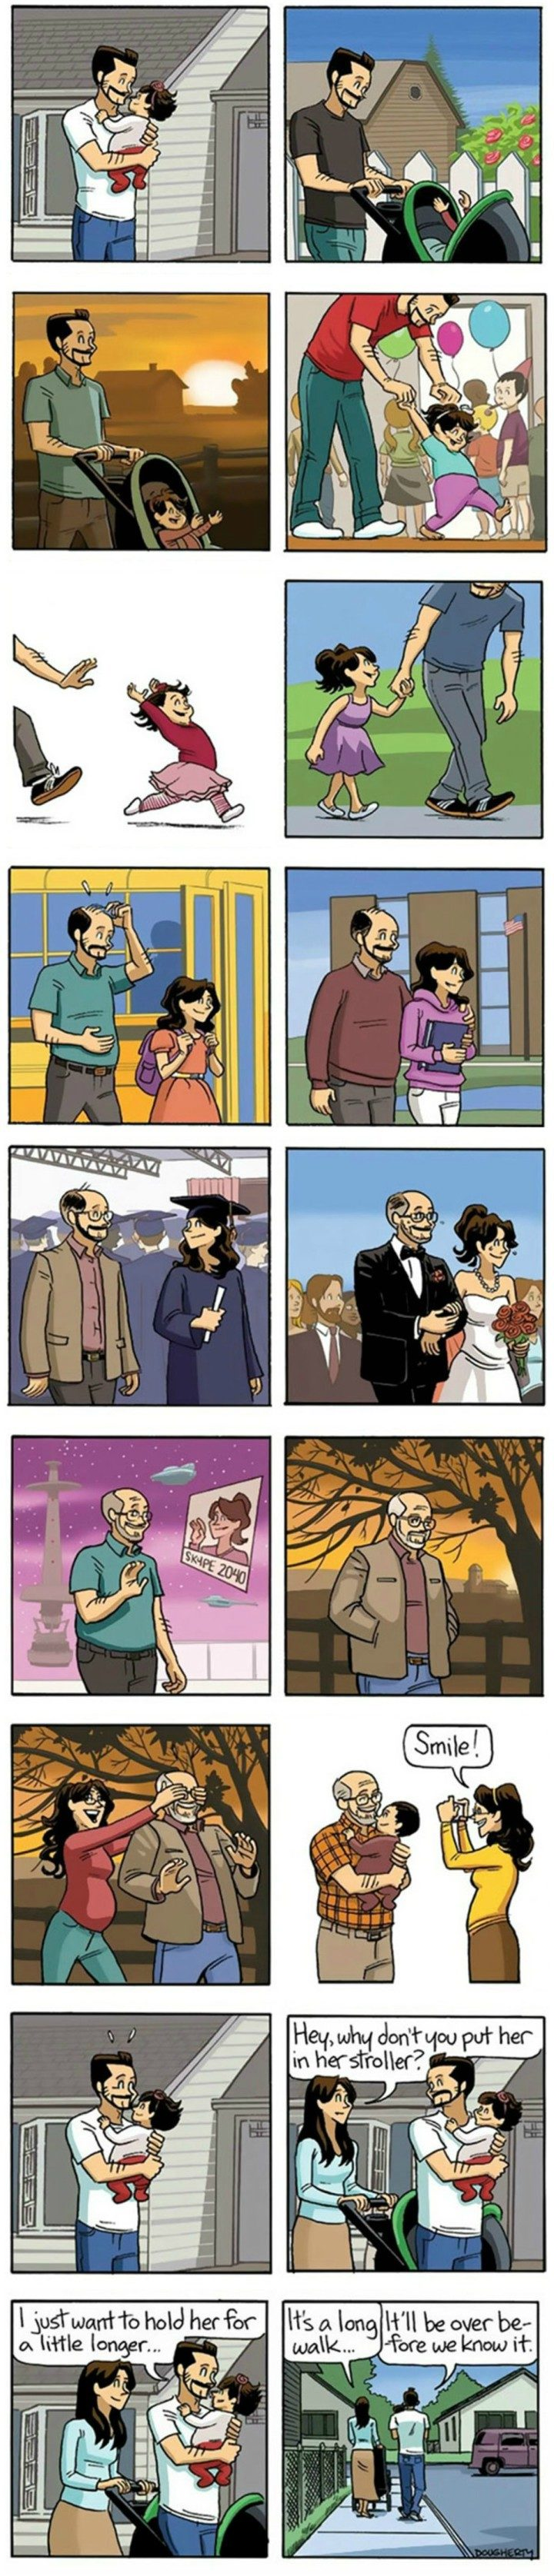 """Beardo Comic Strip Entitled """"The End"""" About Growing Old Will Melt Your Heart"""